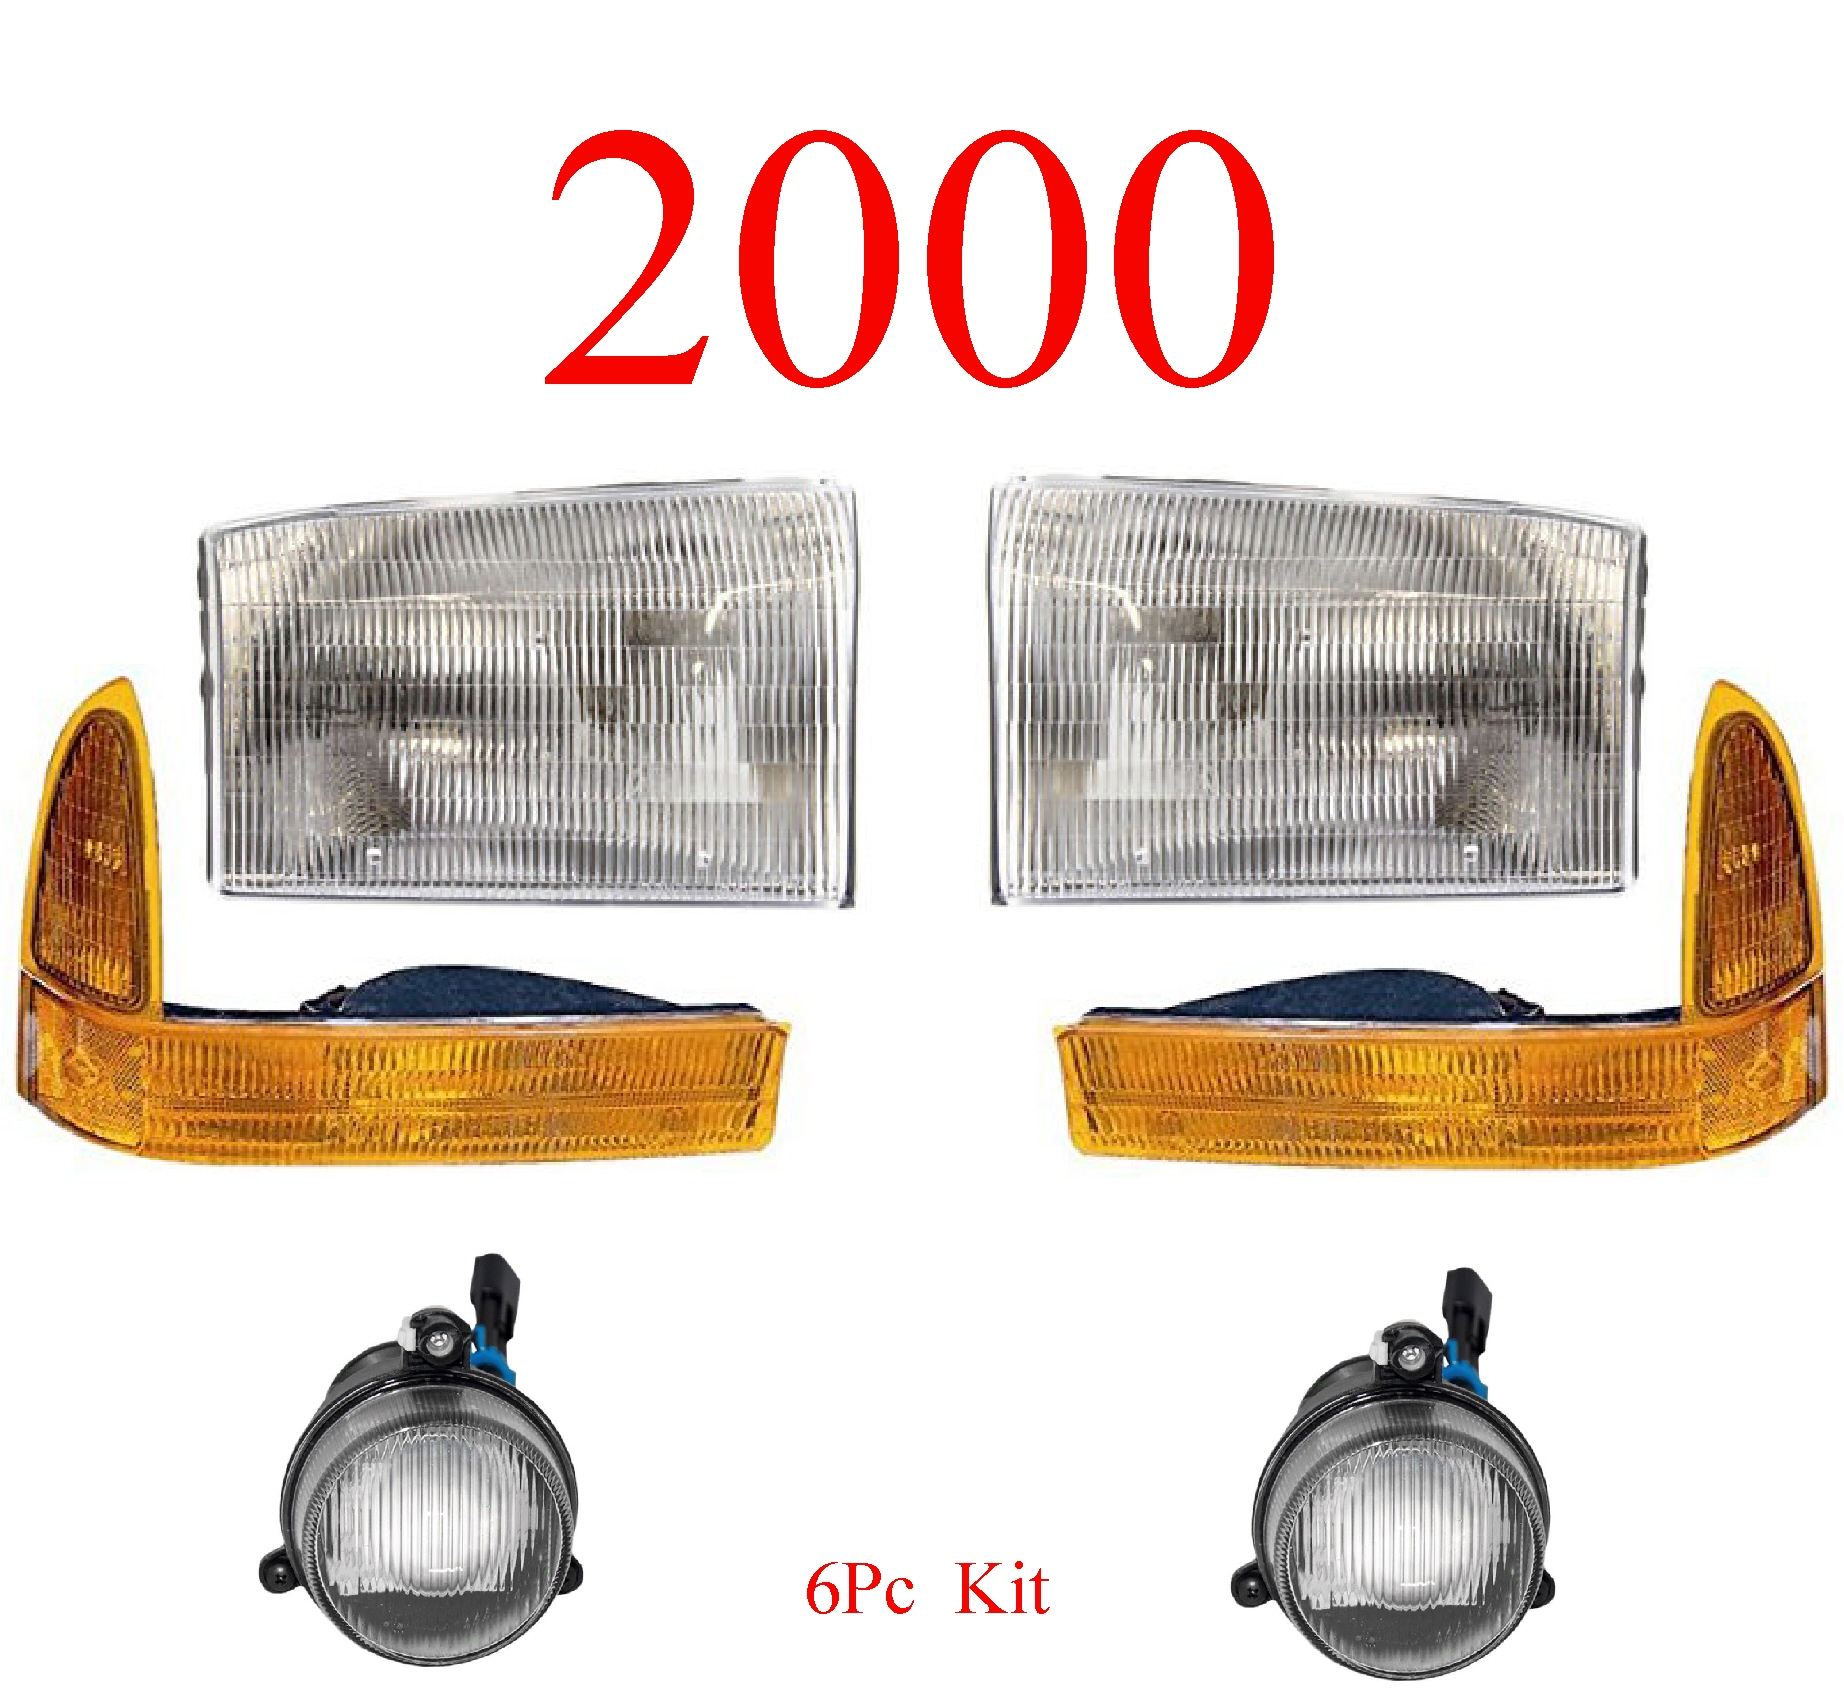 00 Ford Excursion 6Pc Head, Park & Fog Light Kit